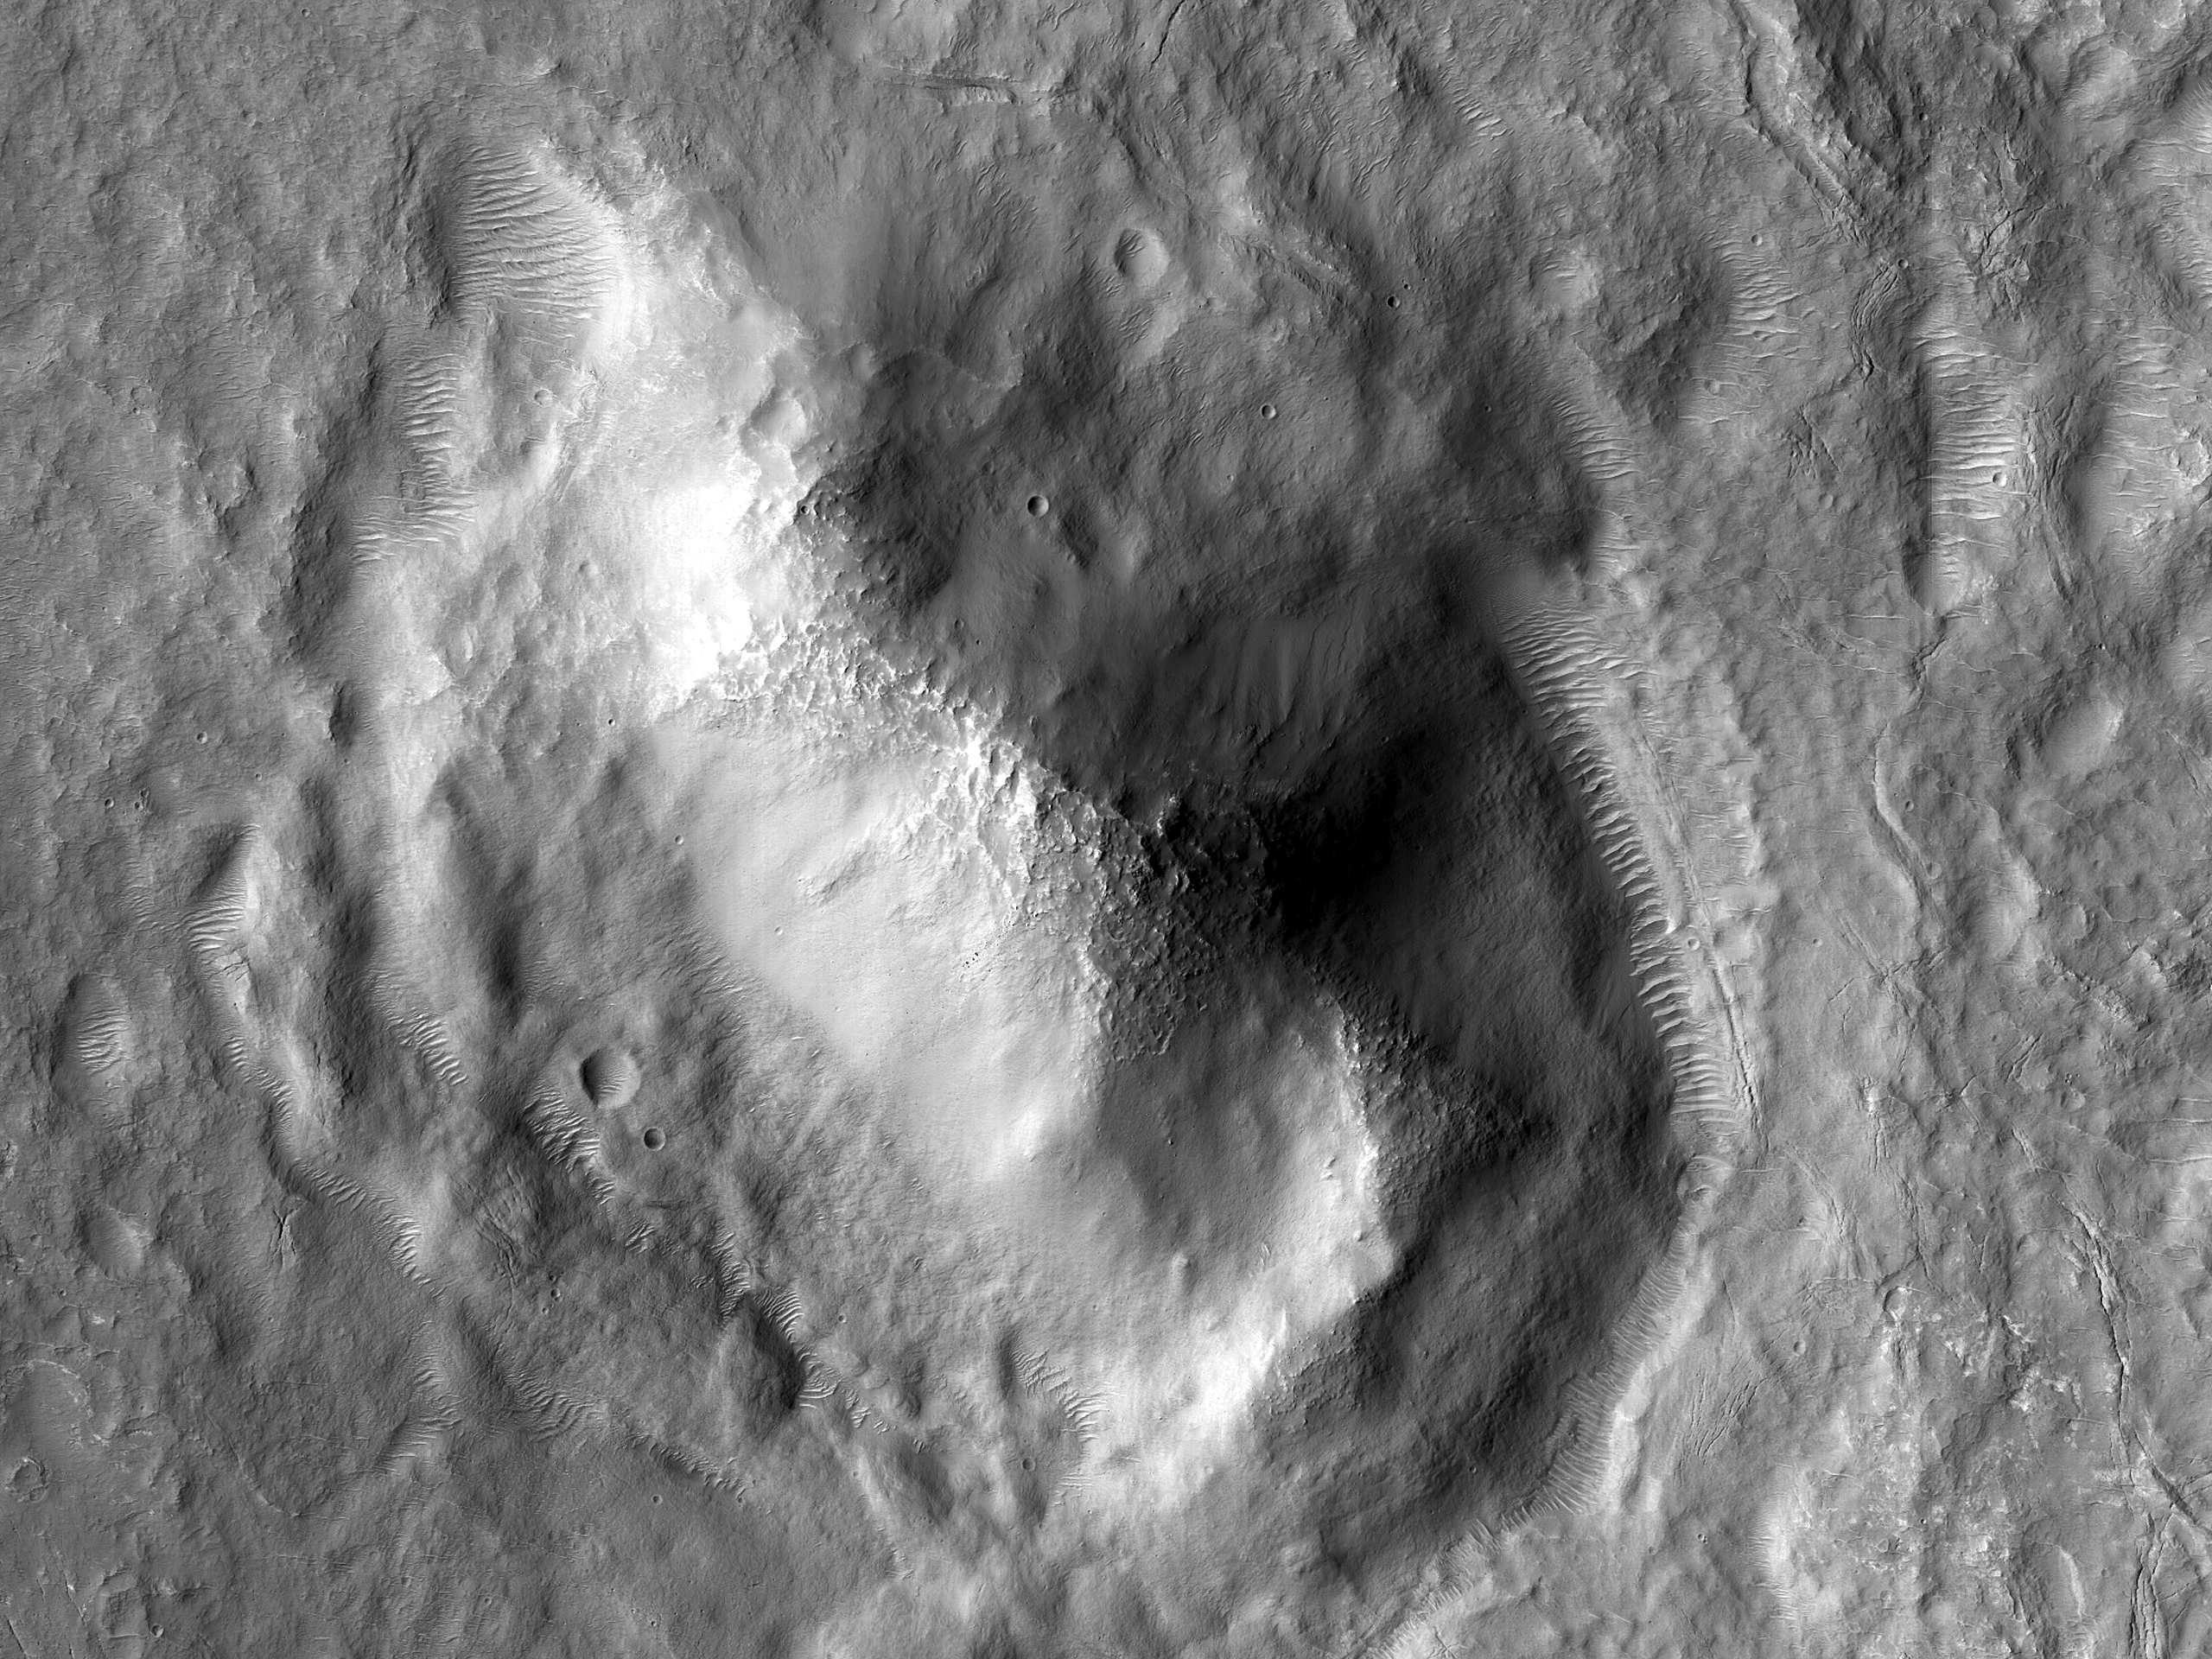 Landforms on the Floor of a Crater